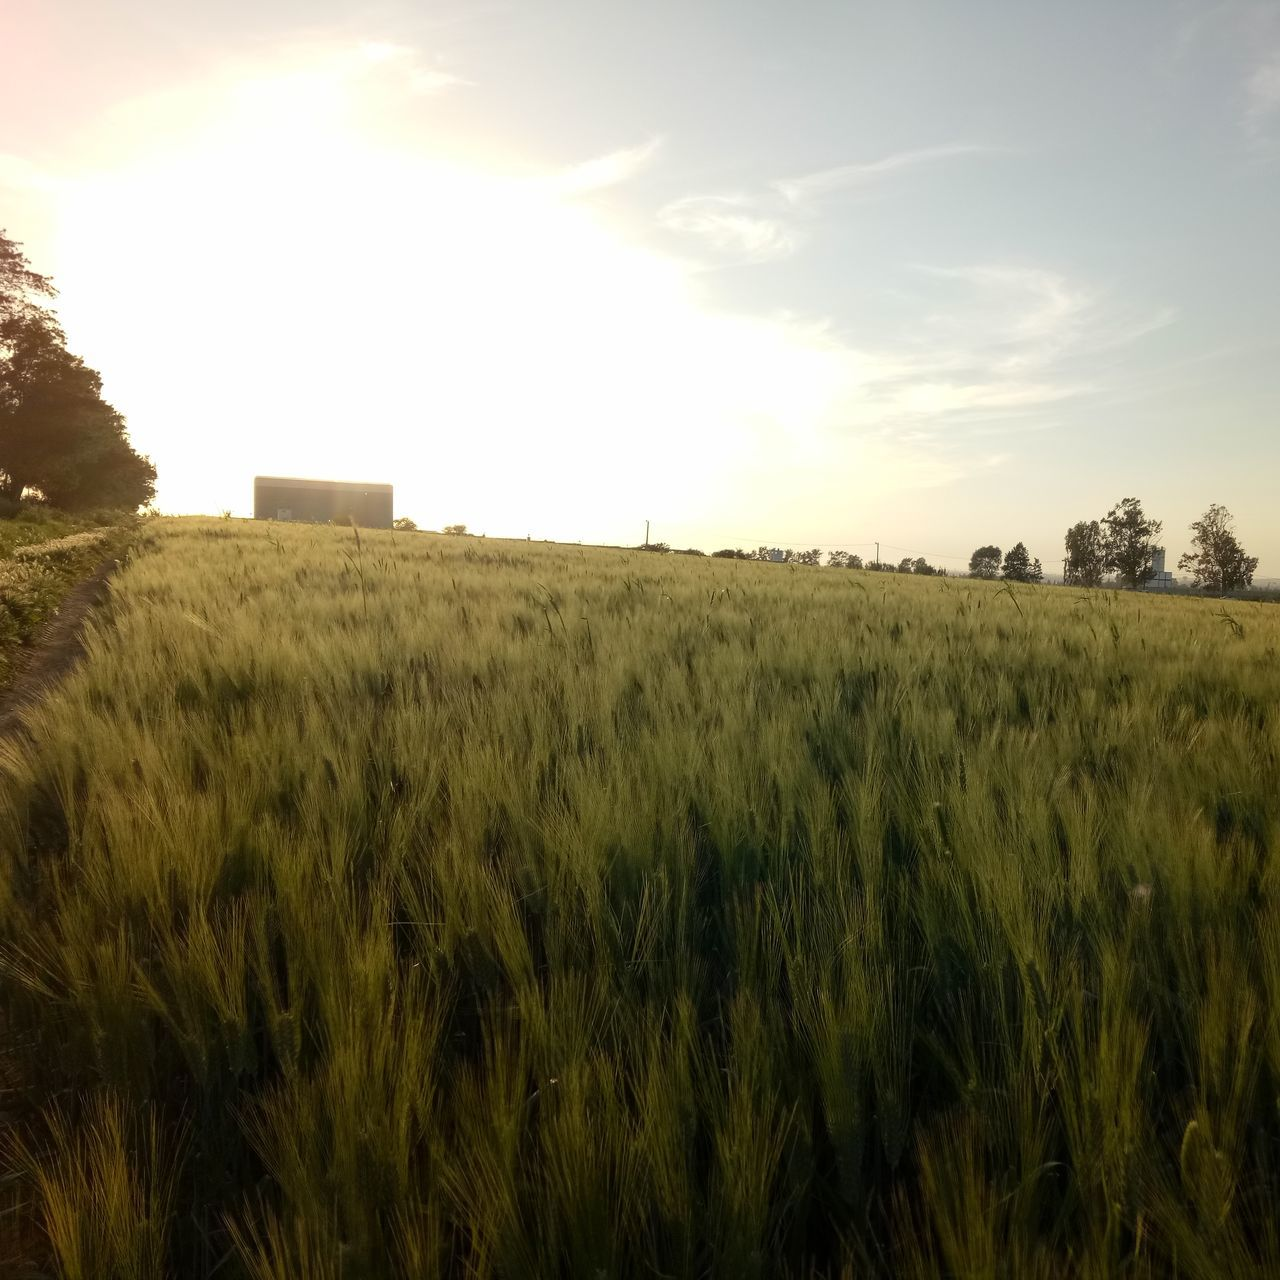 field, agriculture, growth, farm, landscape, nature, wheat, crop, grass, sky, cereal plant, no people, rural scene, outdoors, beauty in nature, day